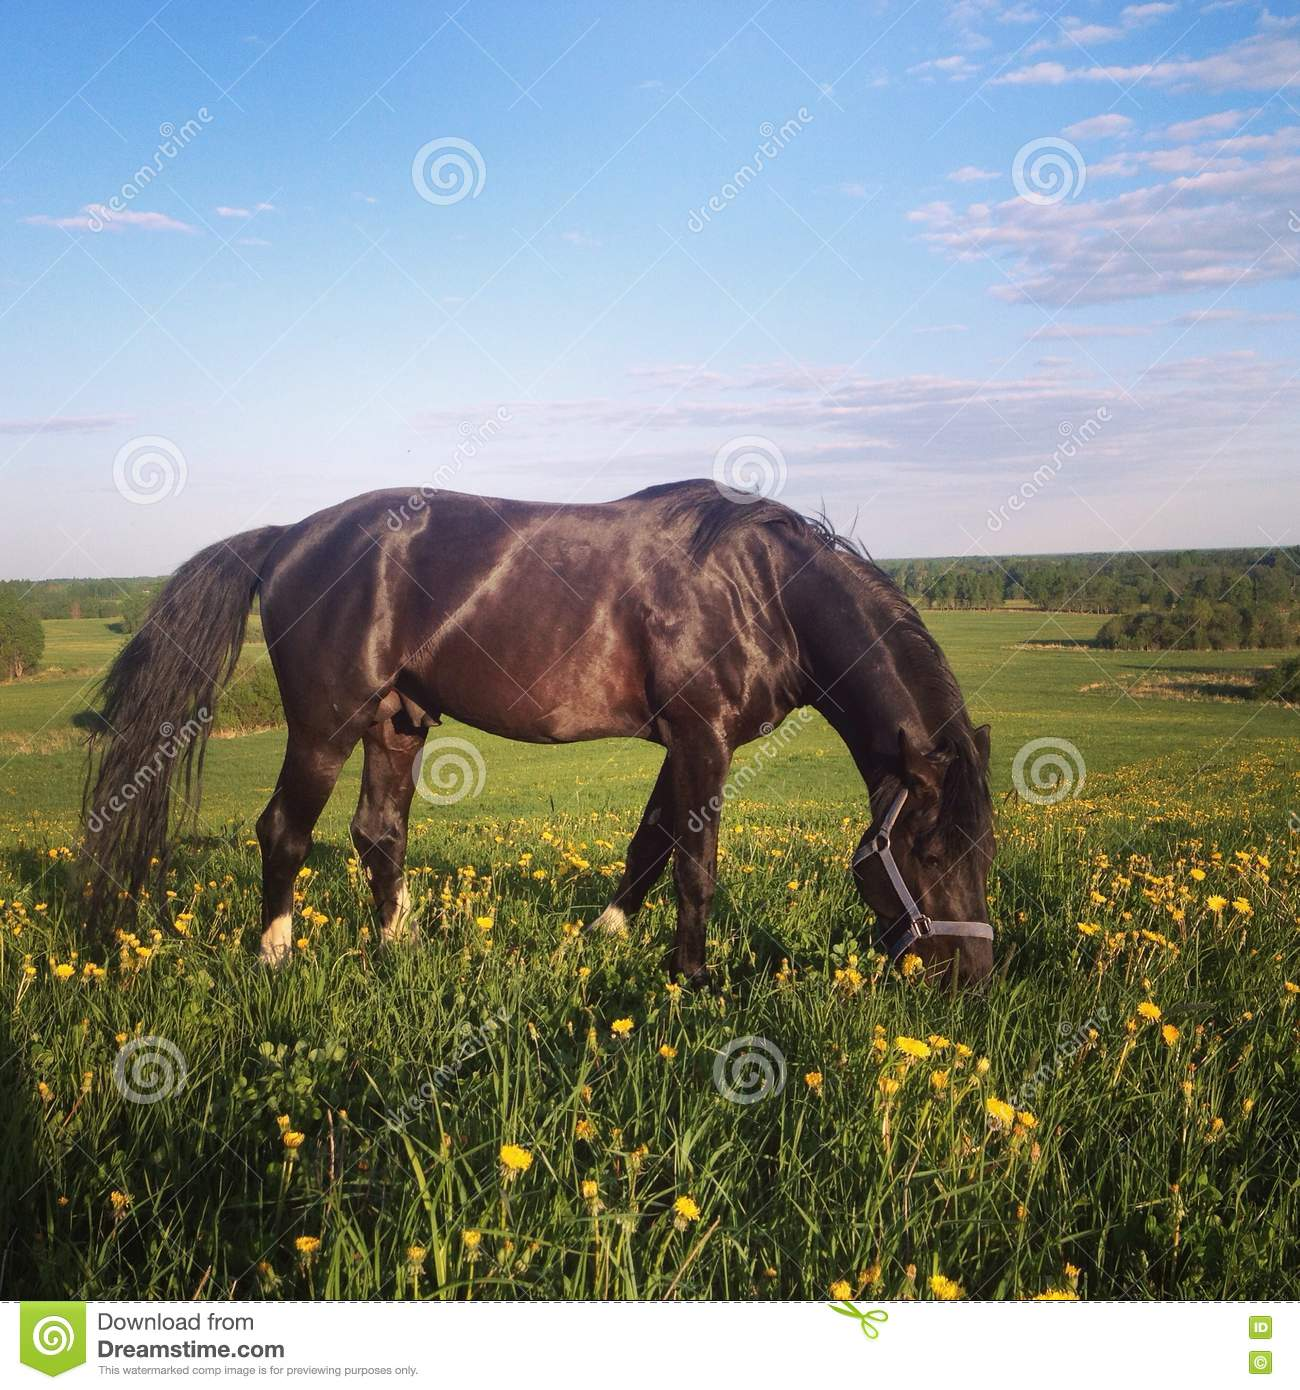 Black horse on a field